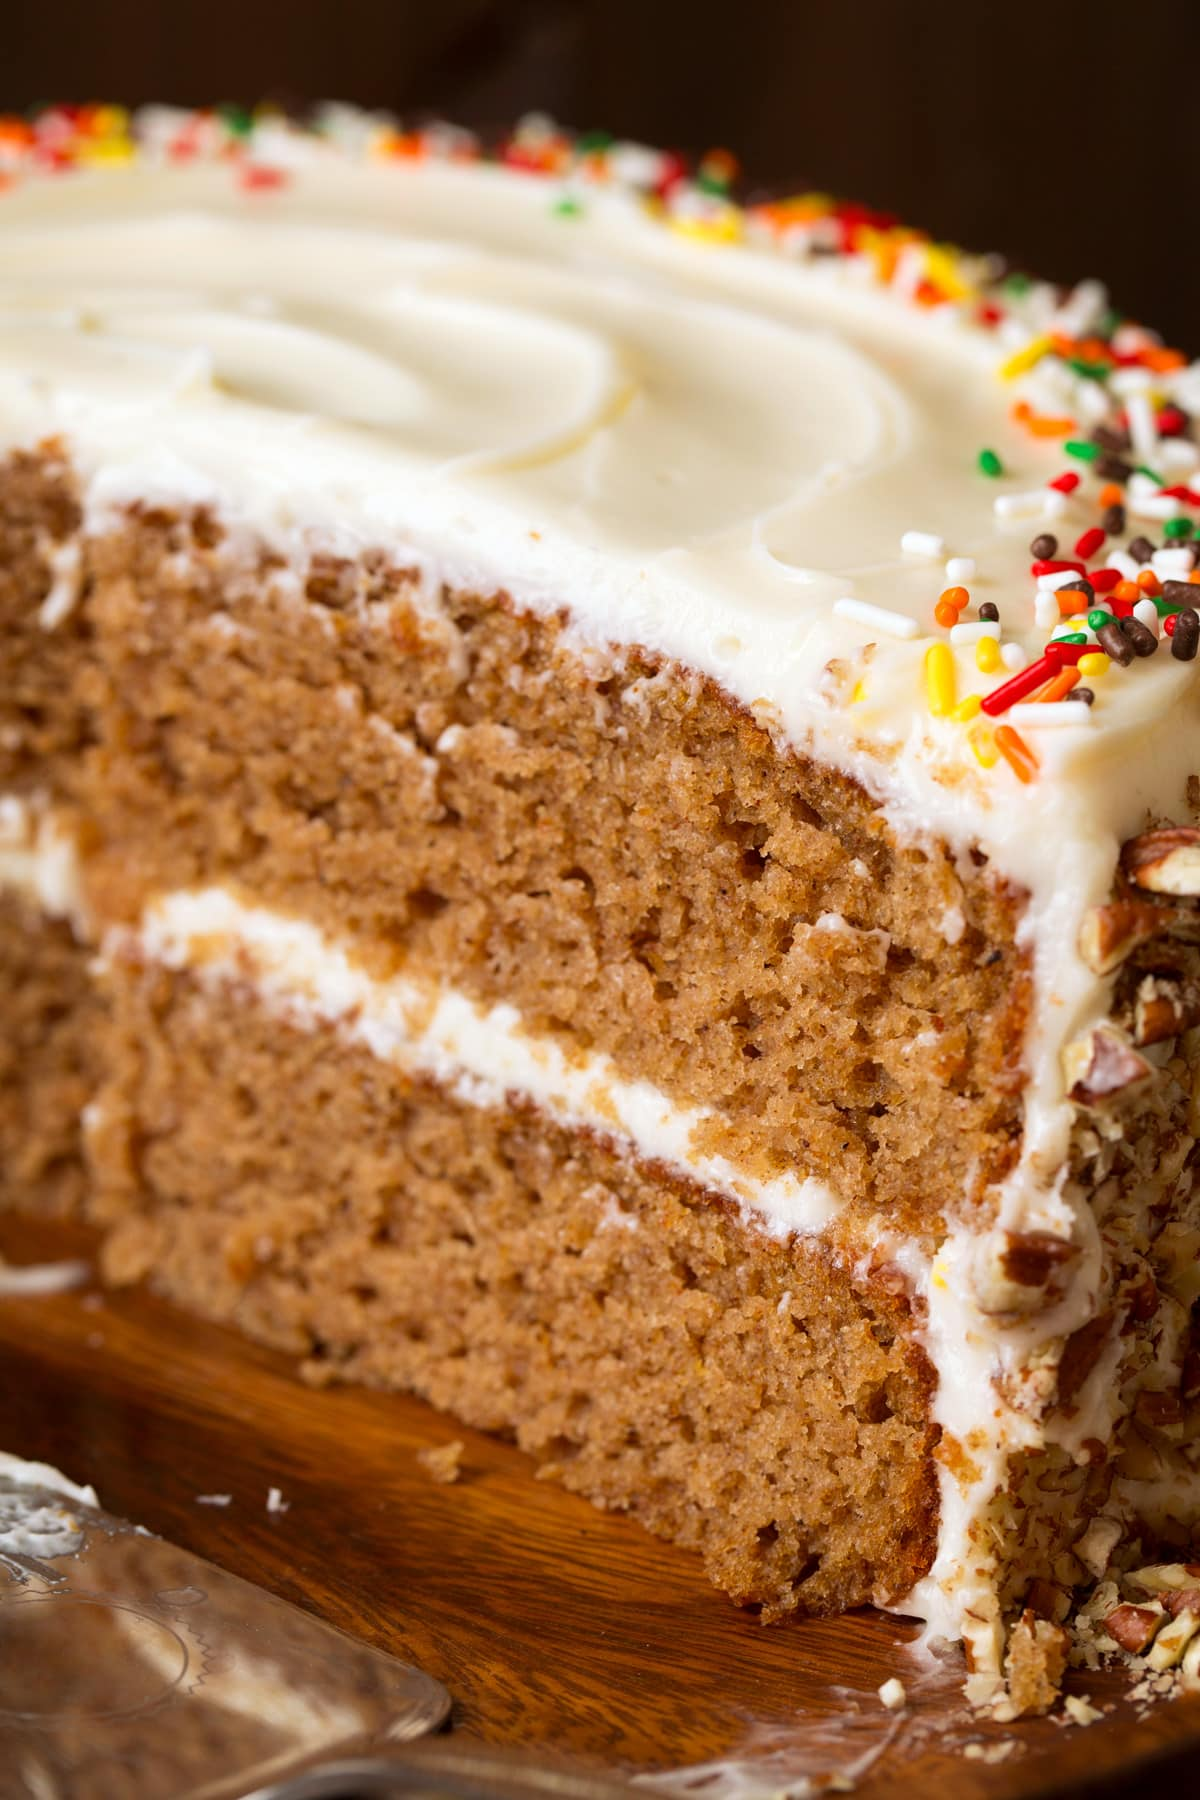 Close up image of spice cake showing texture and frosting layers.